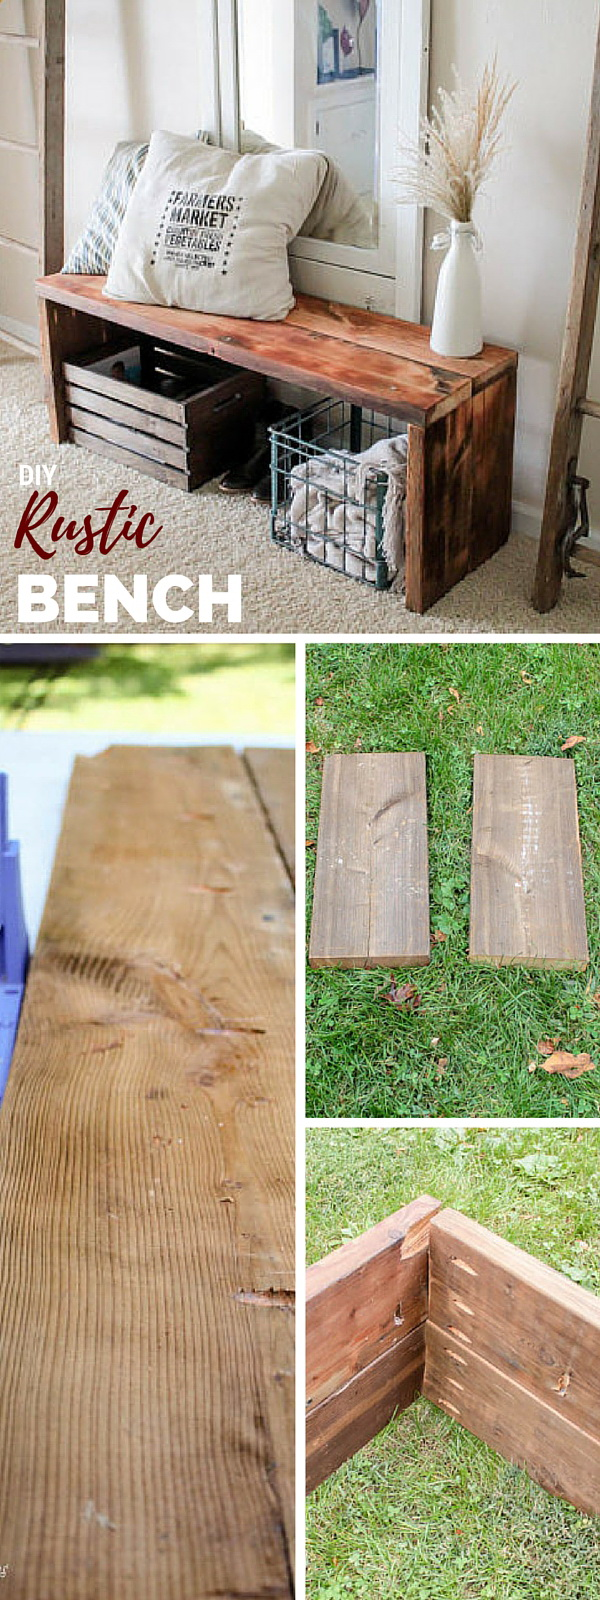 Simple DIY Rustic Wood Bench. Add warm texture and little rustic accents to your home decor with this DIY wood bench.